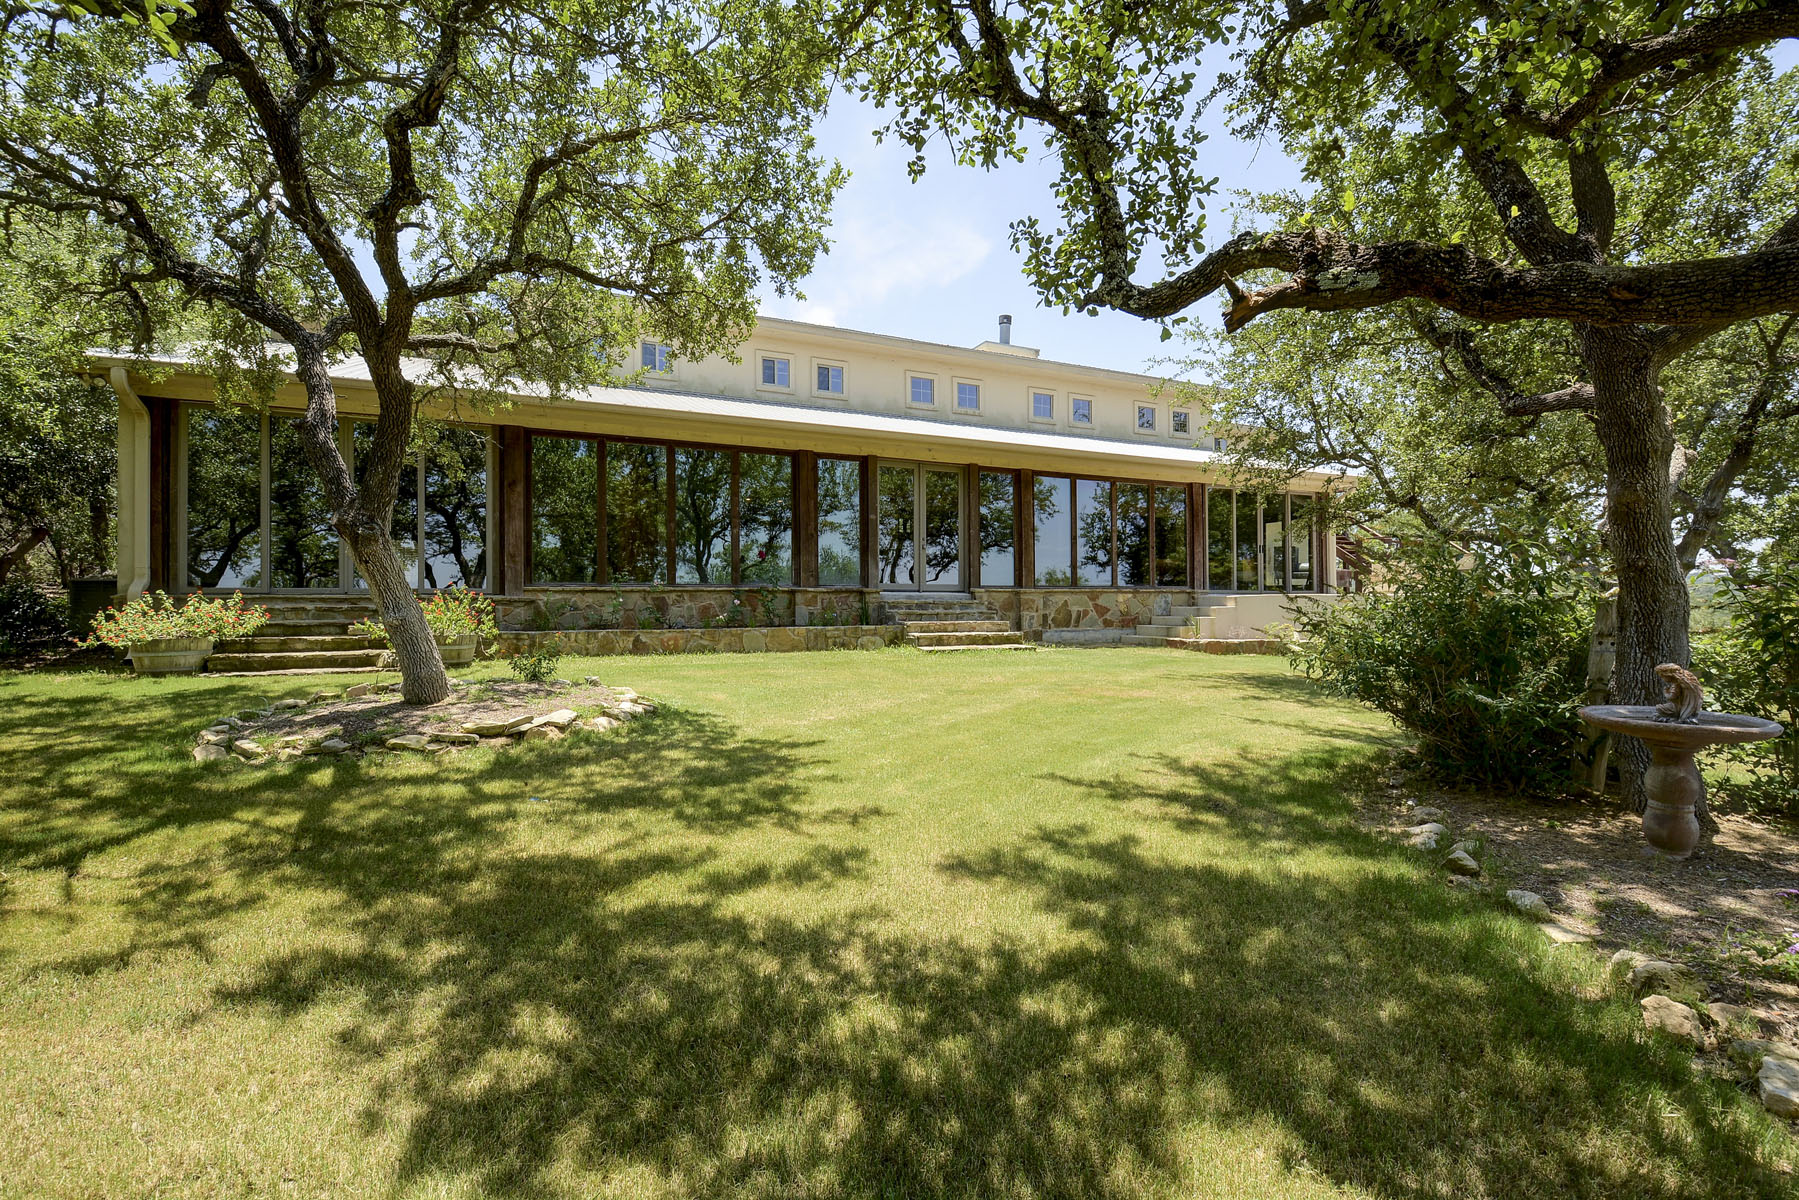 Hacienda / Granja / Rancho / Plantación por un Venta en Panoramic Views of the Texas Hill Country 140 Granite Ridge Dr Spicewood, Texas, 78669 Estados Unidos